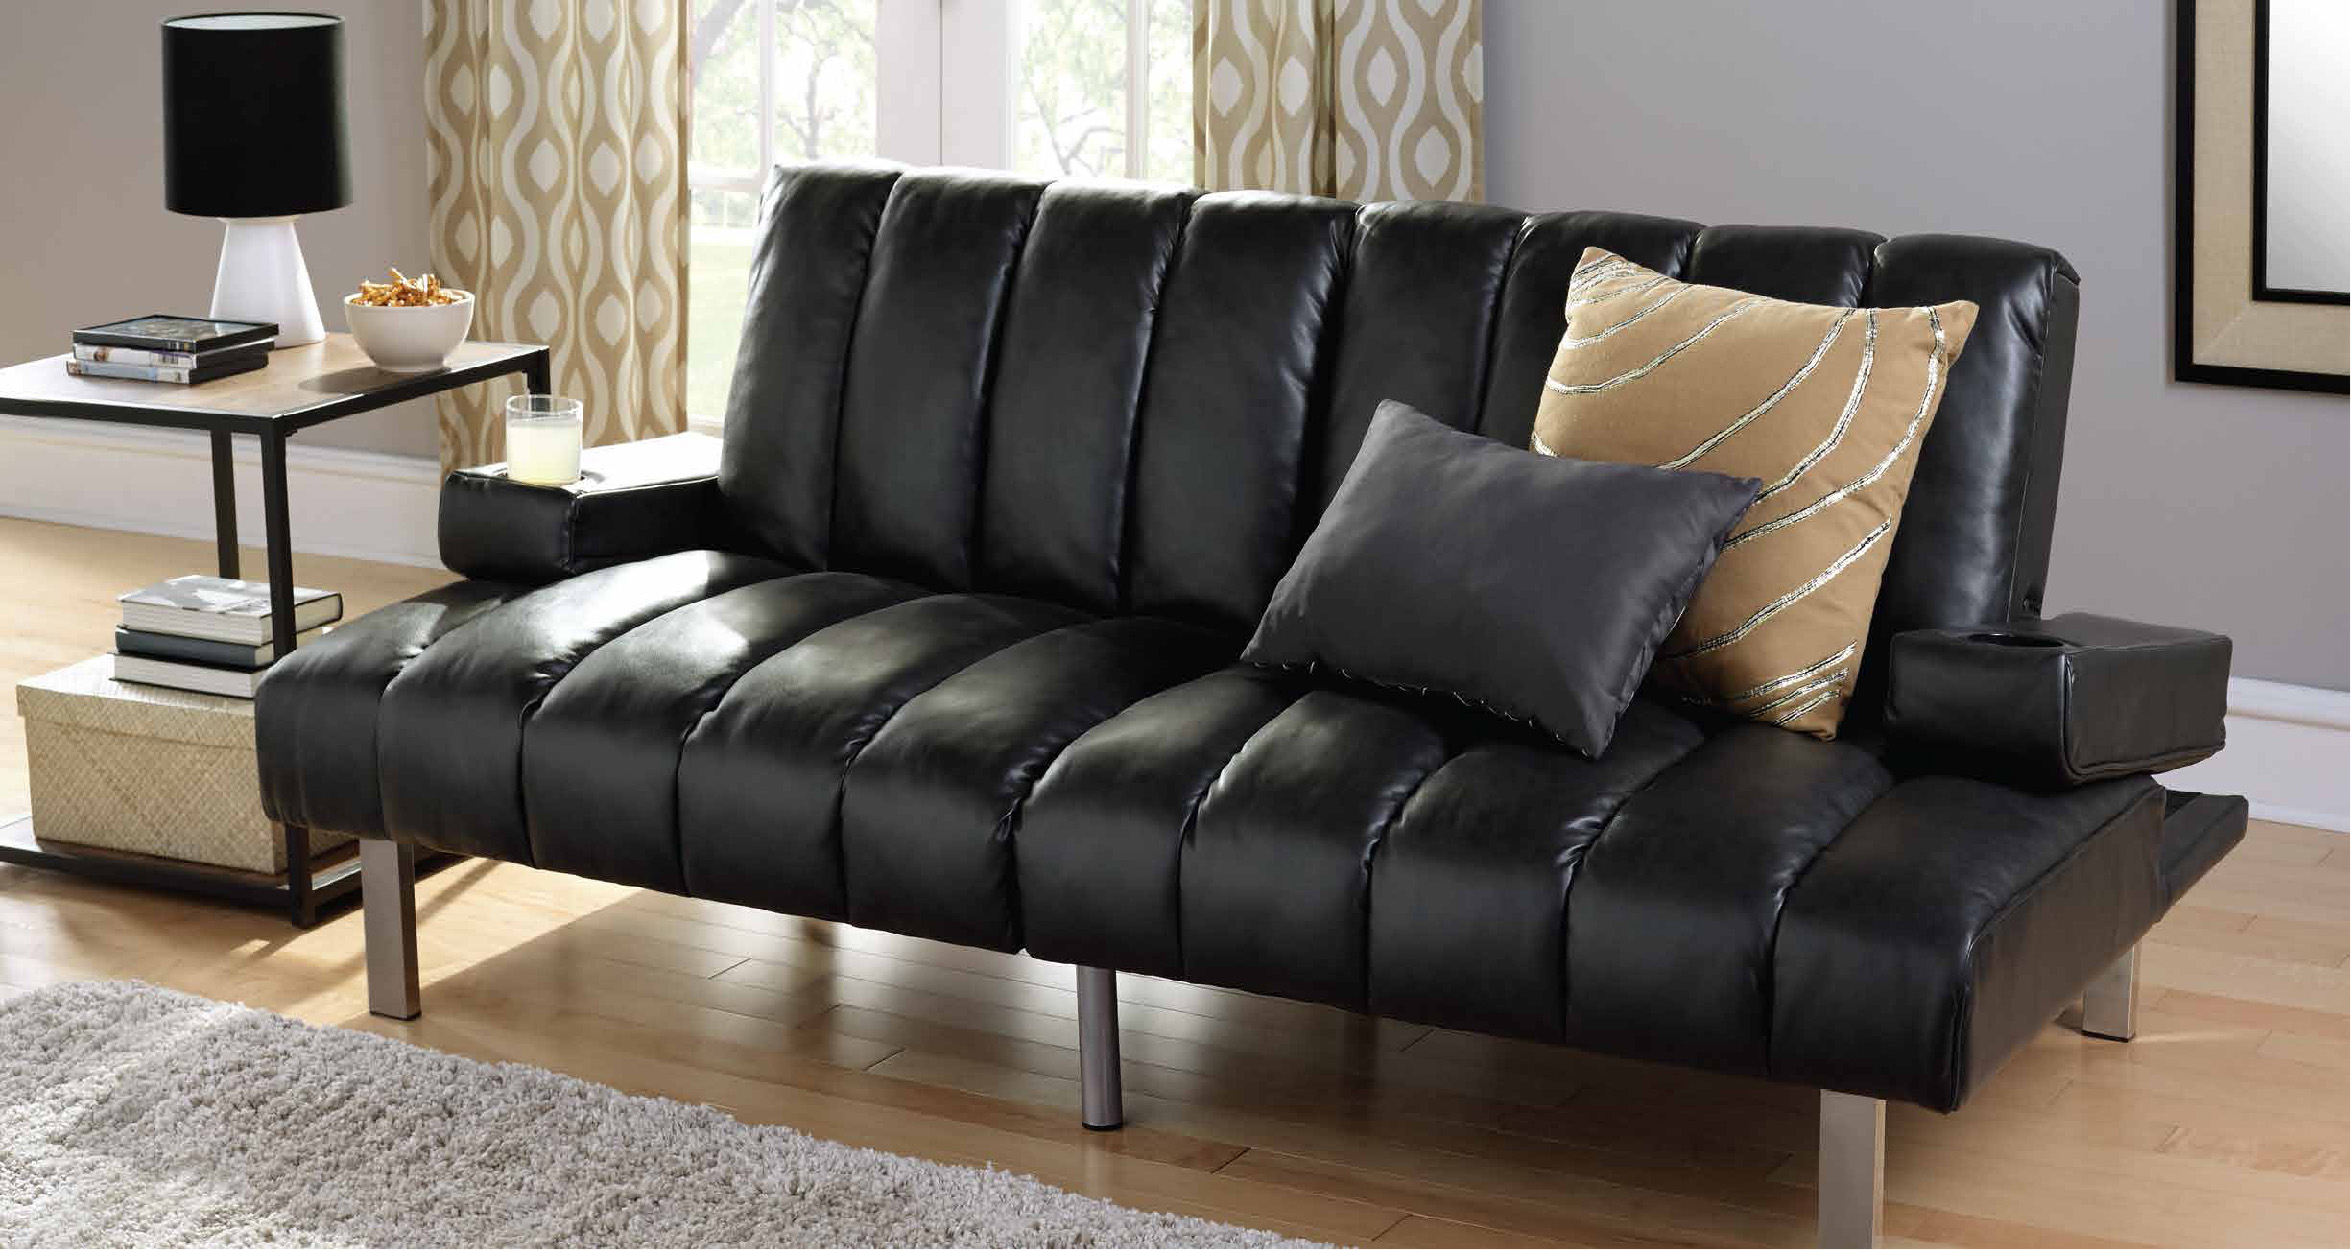 mainstays theater futon with armrests cupholders